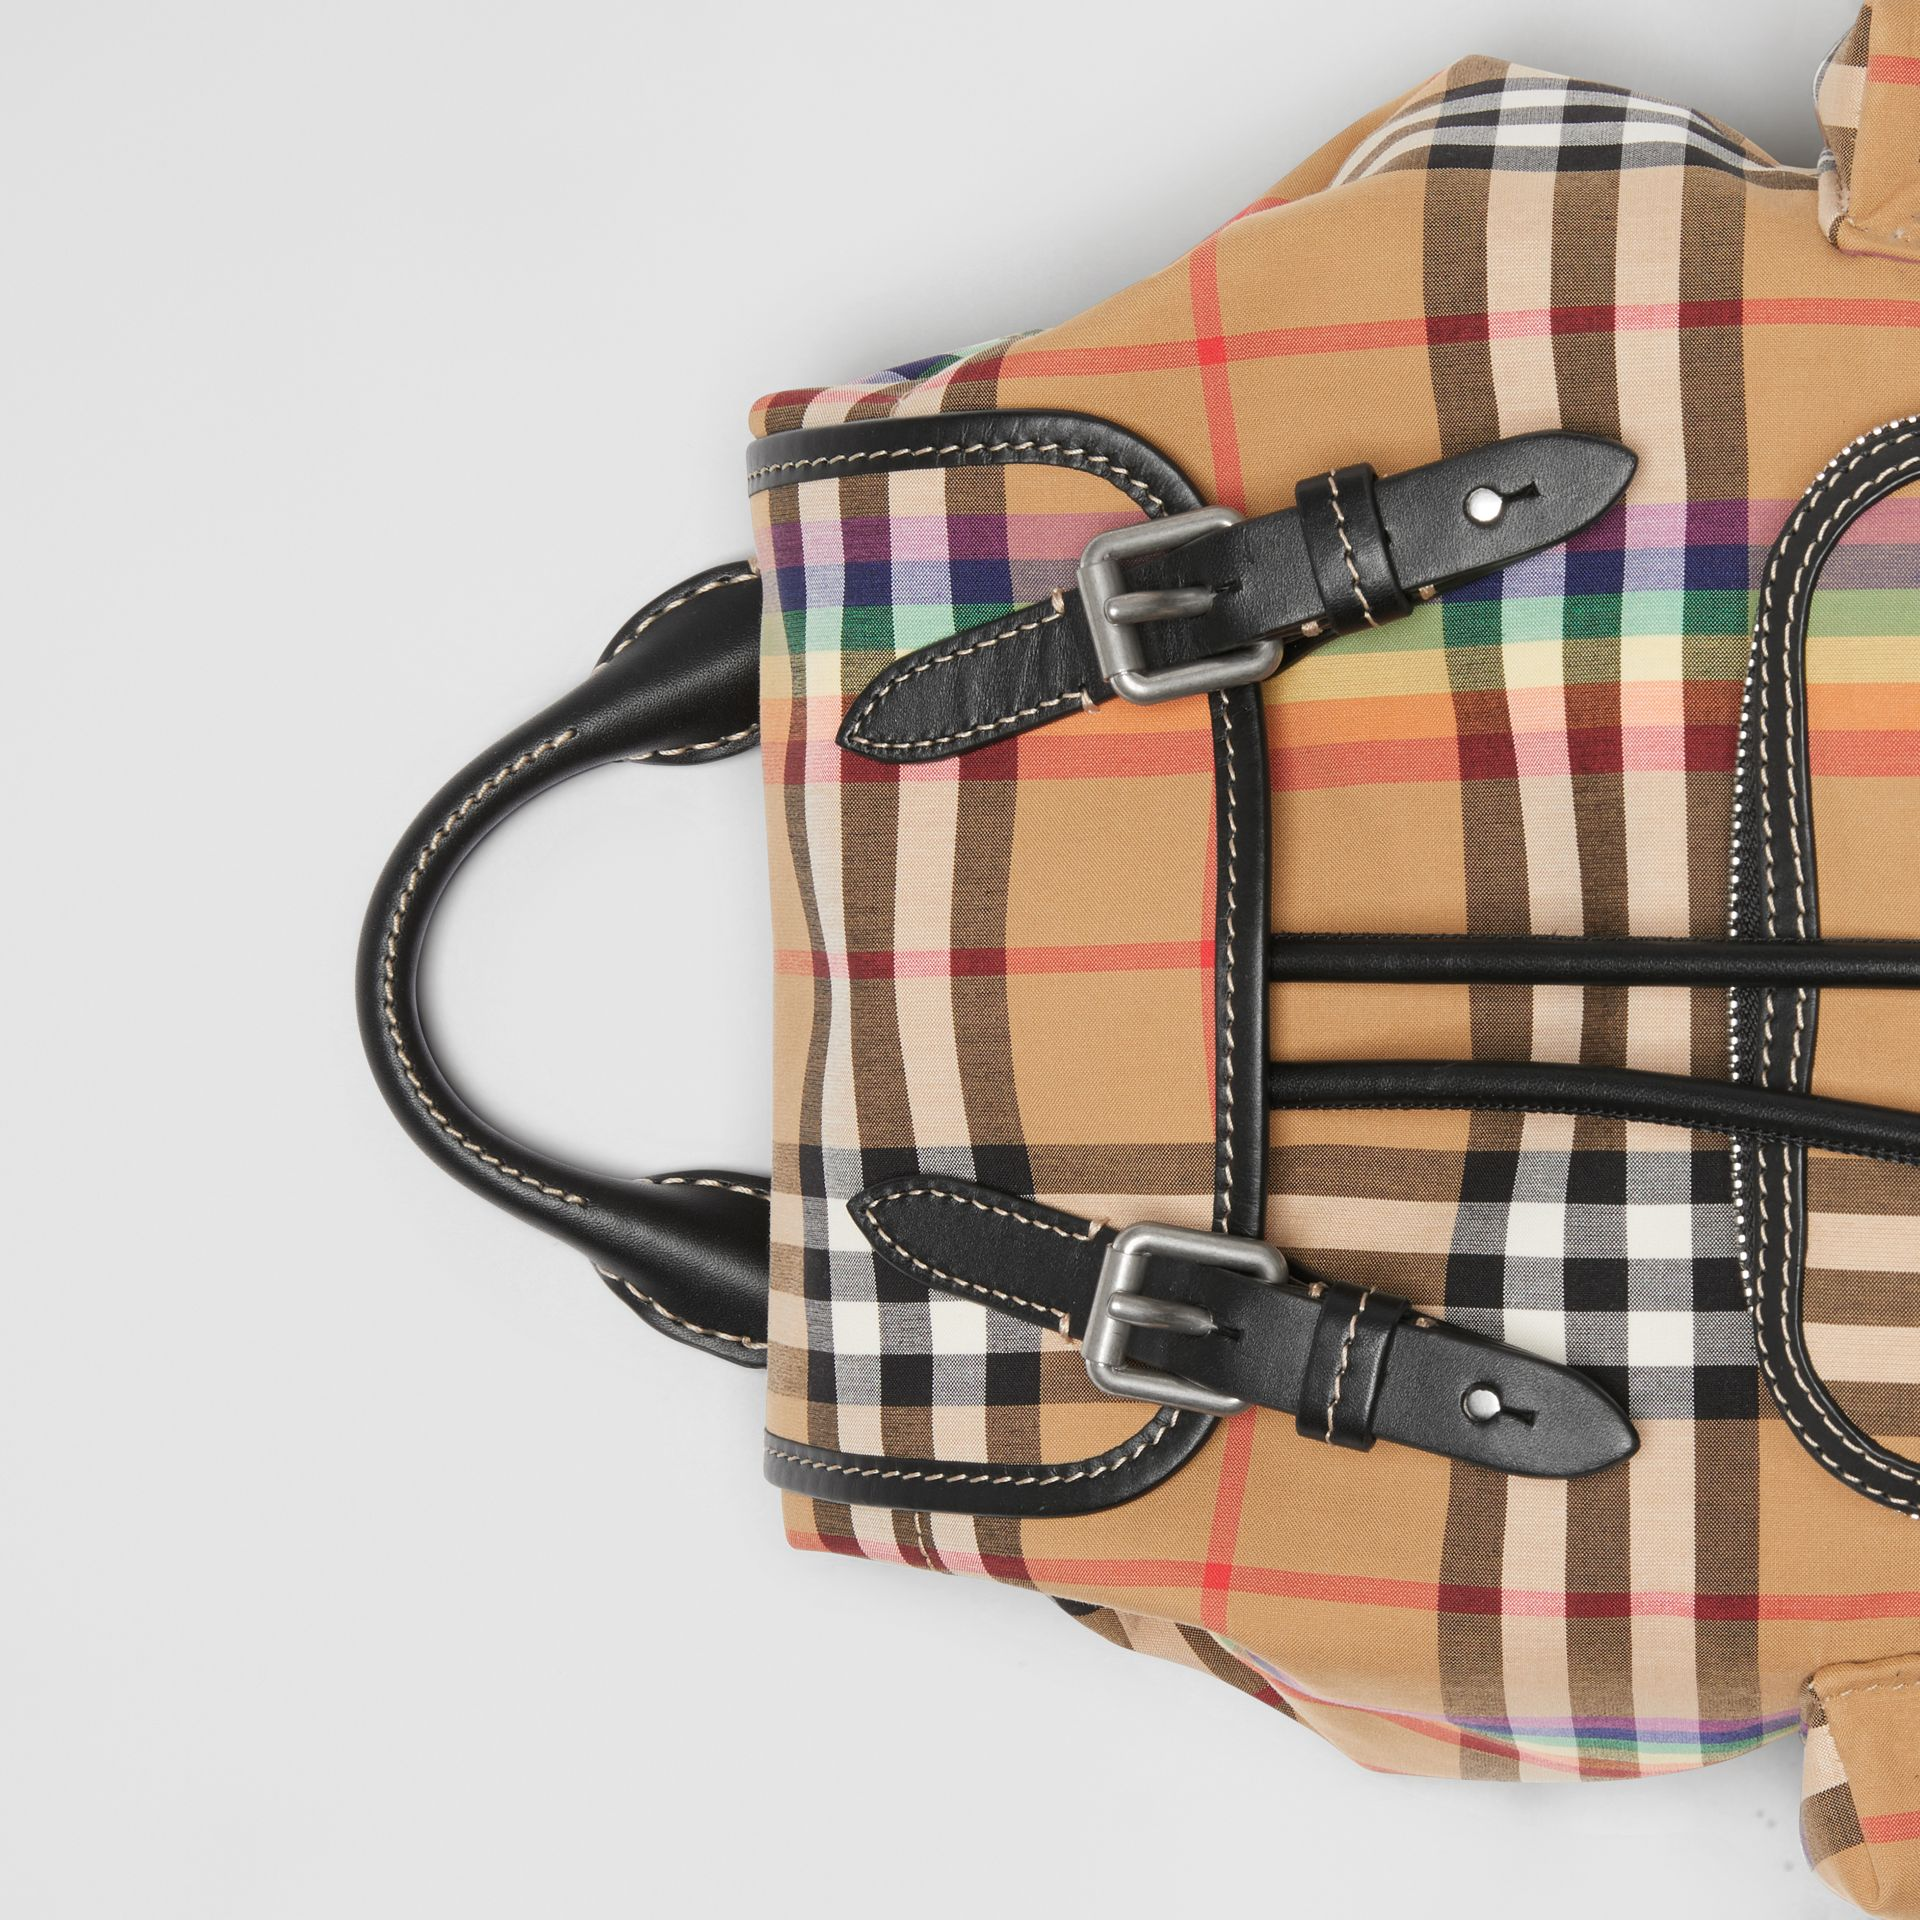 Petit sac The Rucksack à bandoulière avec motif Rainbow Vintage check (Jaune Antique) - Femme | Burberry Canada - photo de la galerie 1